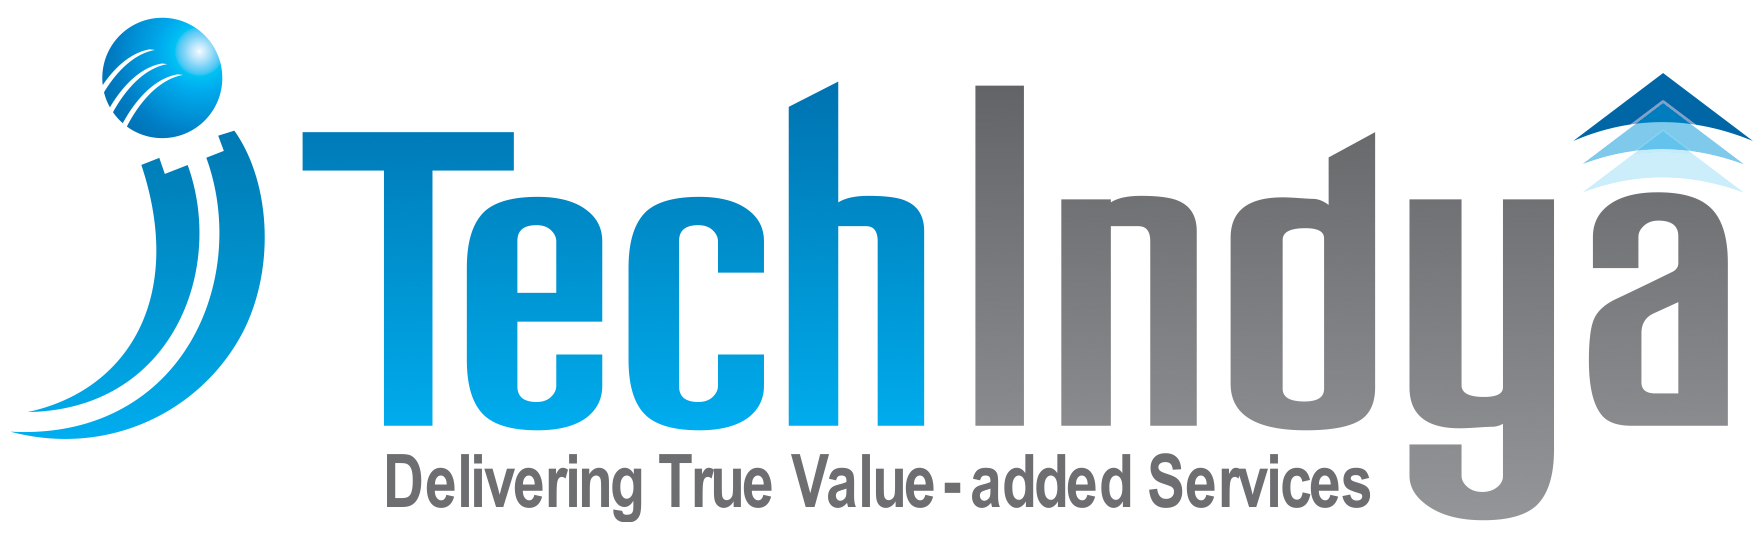 tech indya it services company logo hyderabad india